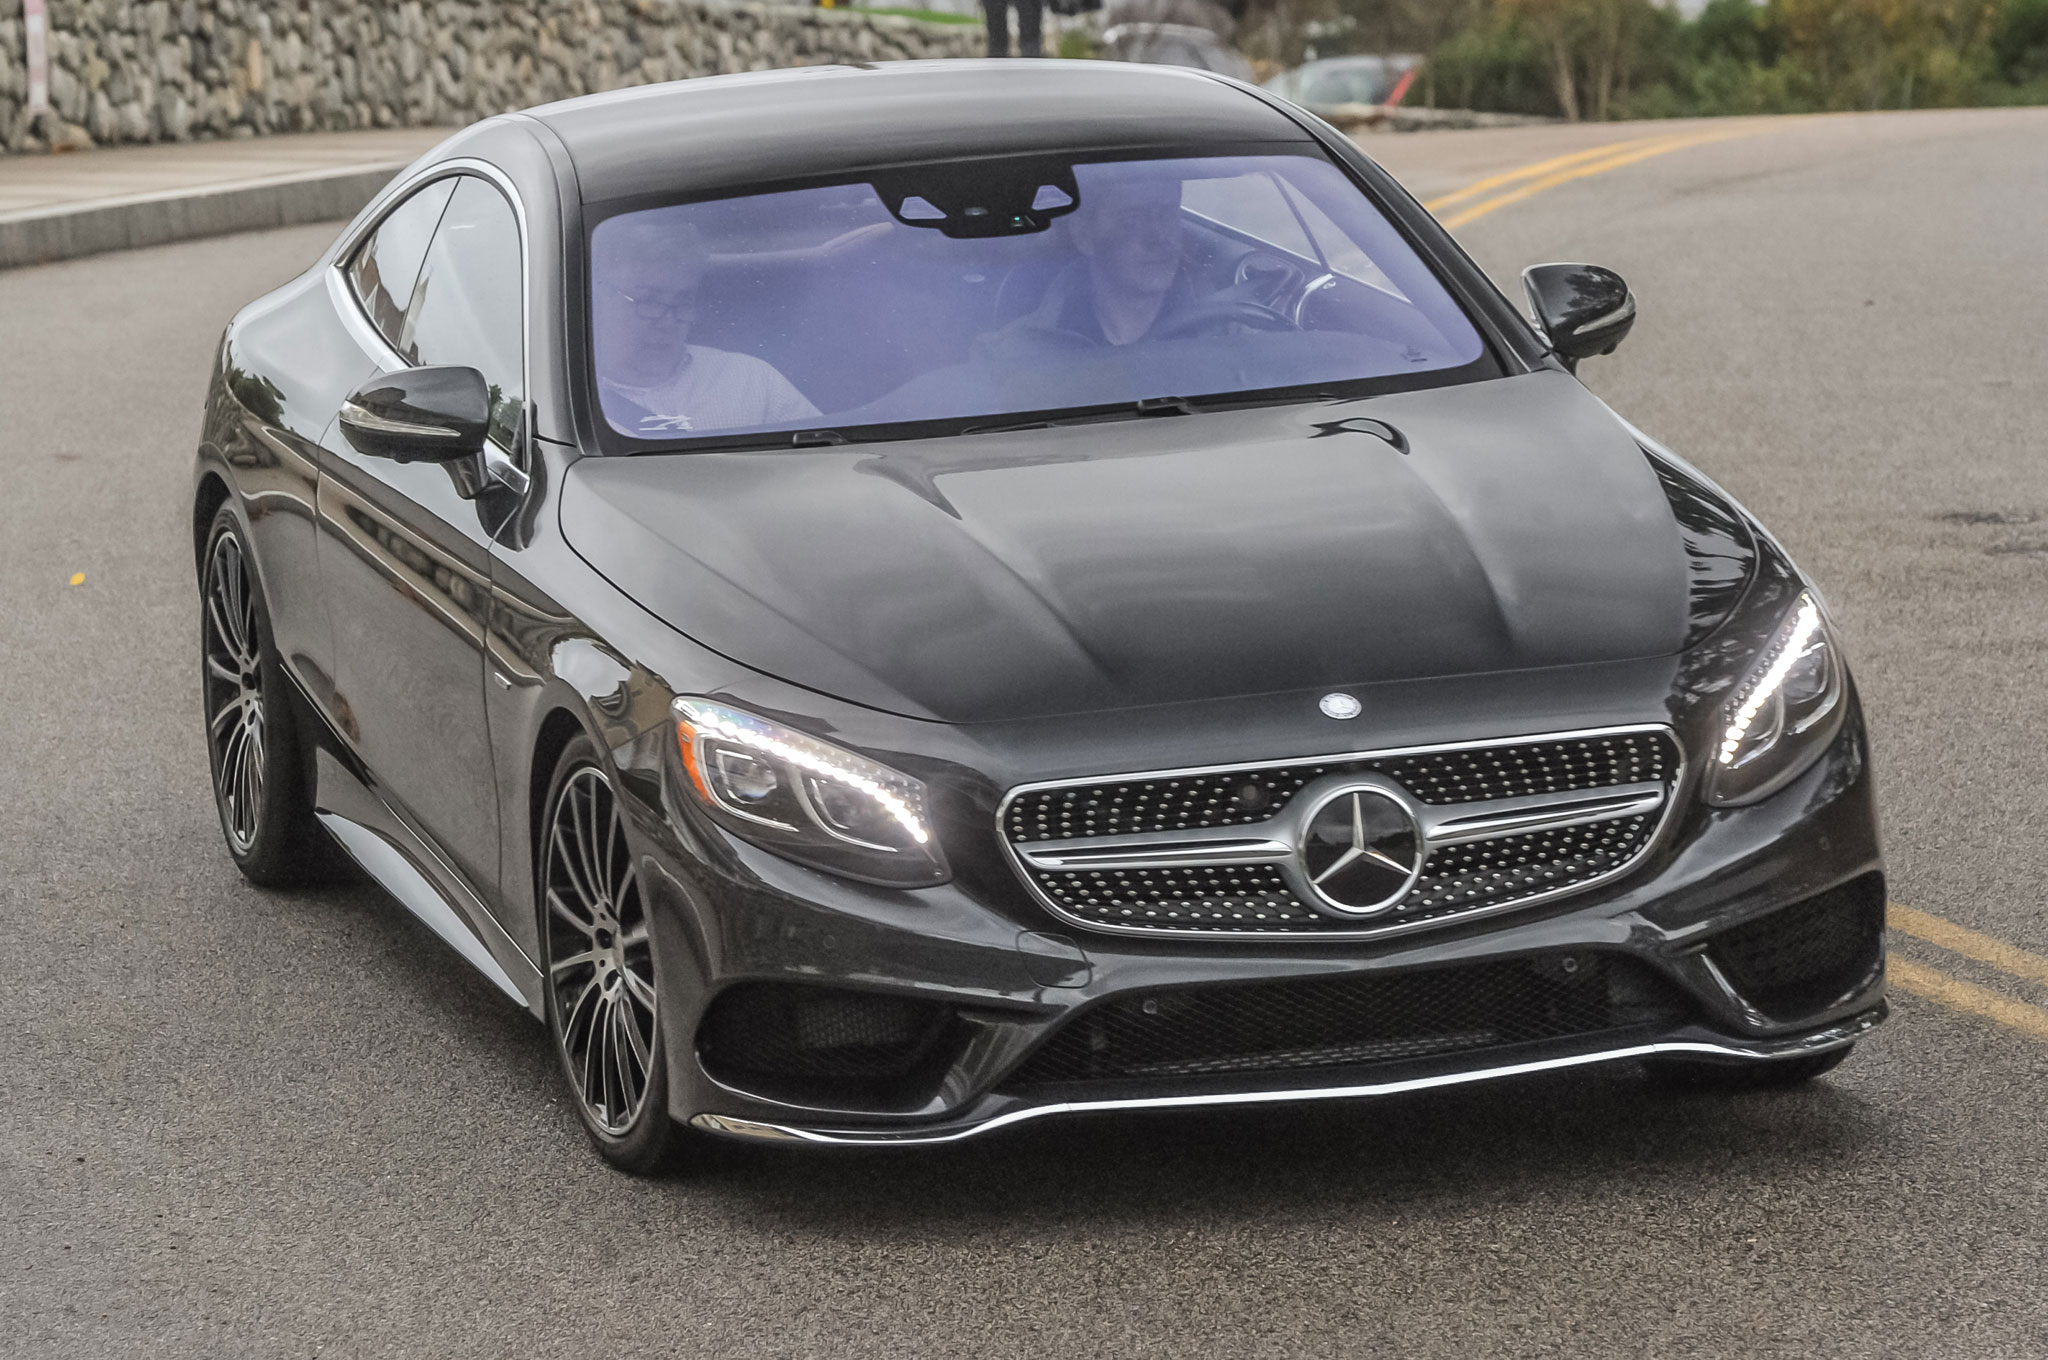 http://st.automobilemag.com/uploads/sites/11/2015/07/2015-Mercedes-Benz-S550-coupe-front-three-quarter-view-in-motion-1.jpg